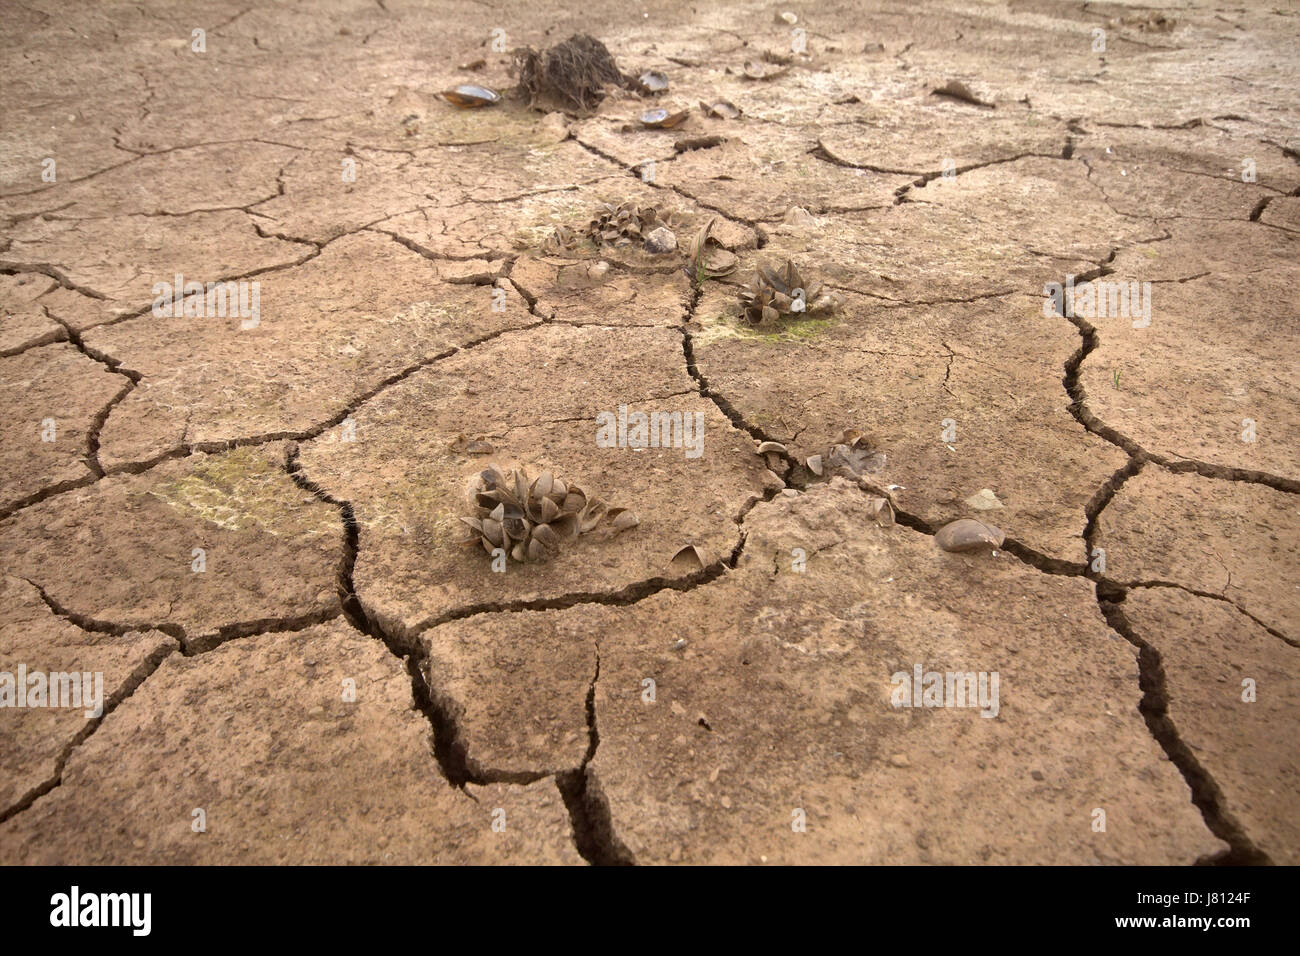 The bottom of dried-up pond with picturesquely broken mud. On surface - small plants - Stock Image